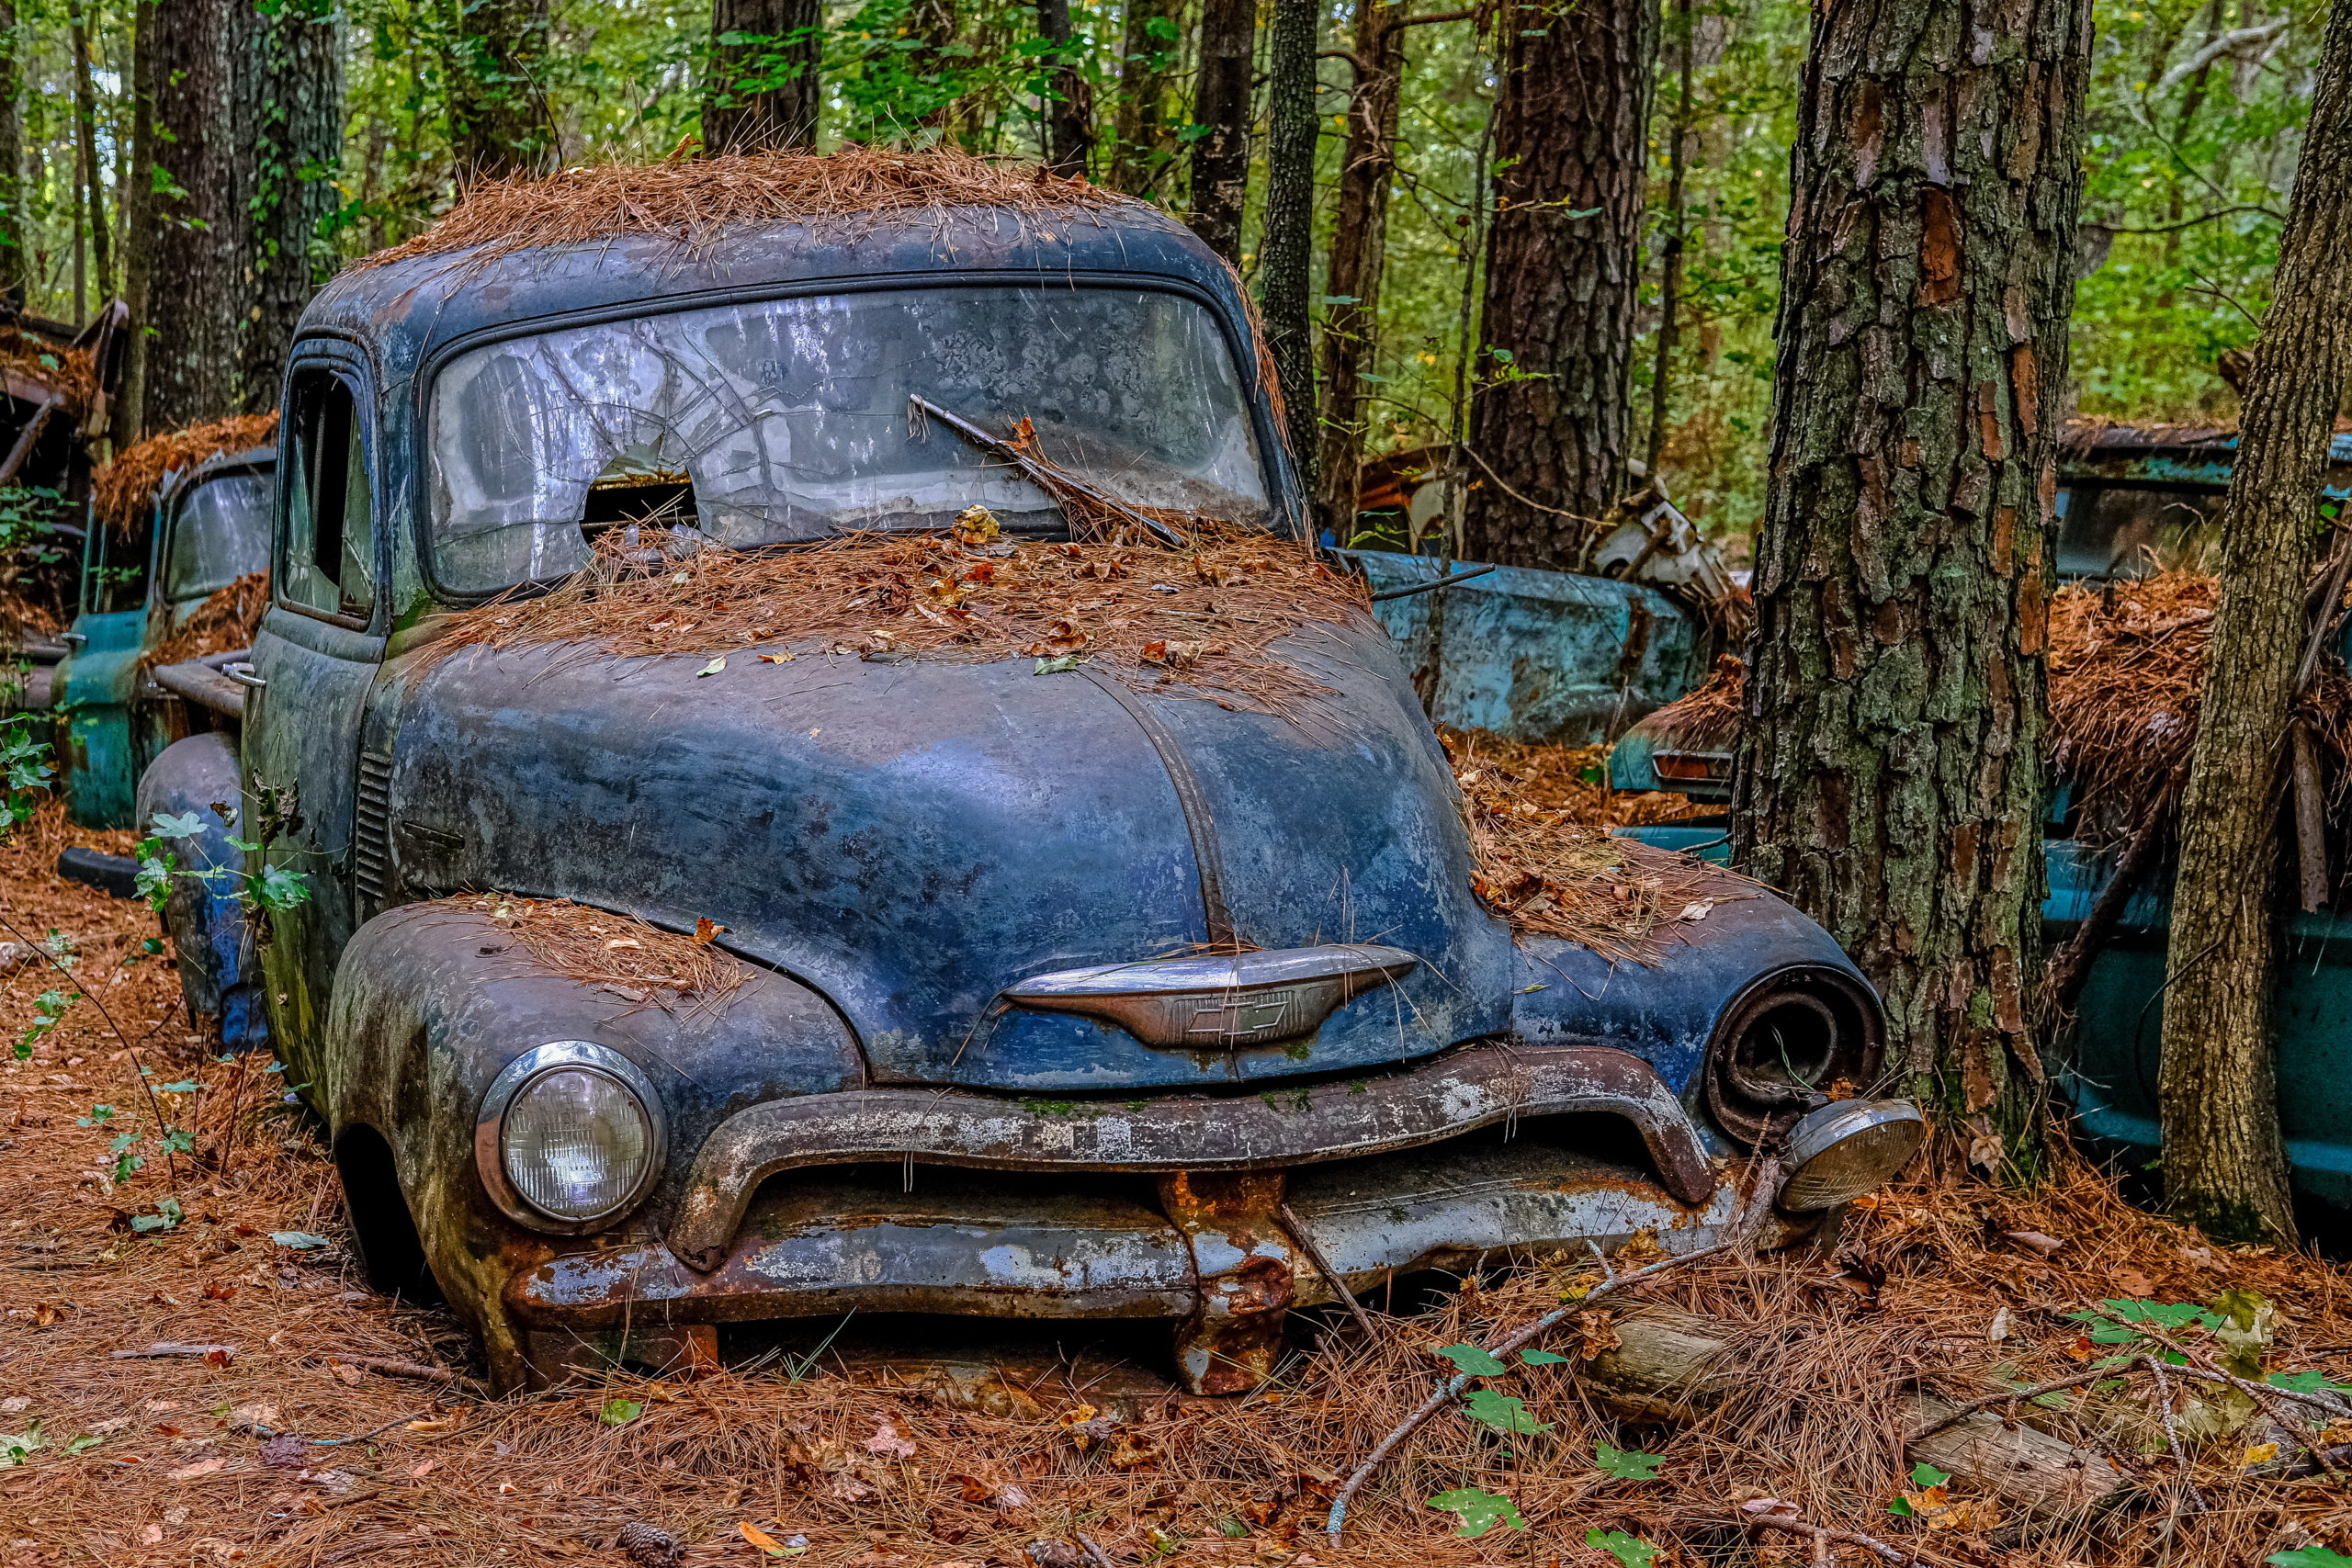 Cash For Junk Cars Madison, AL – Junk Your Car Fast! We Buy Non Running Cars!